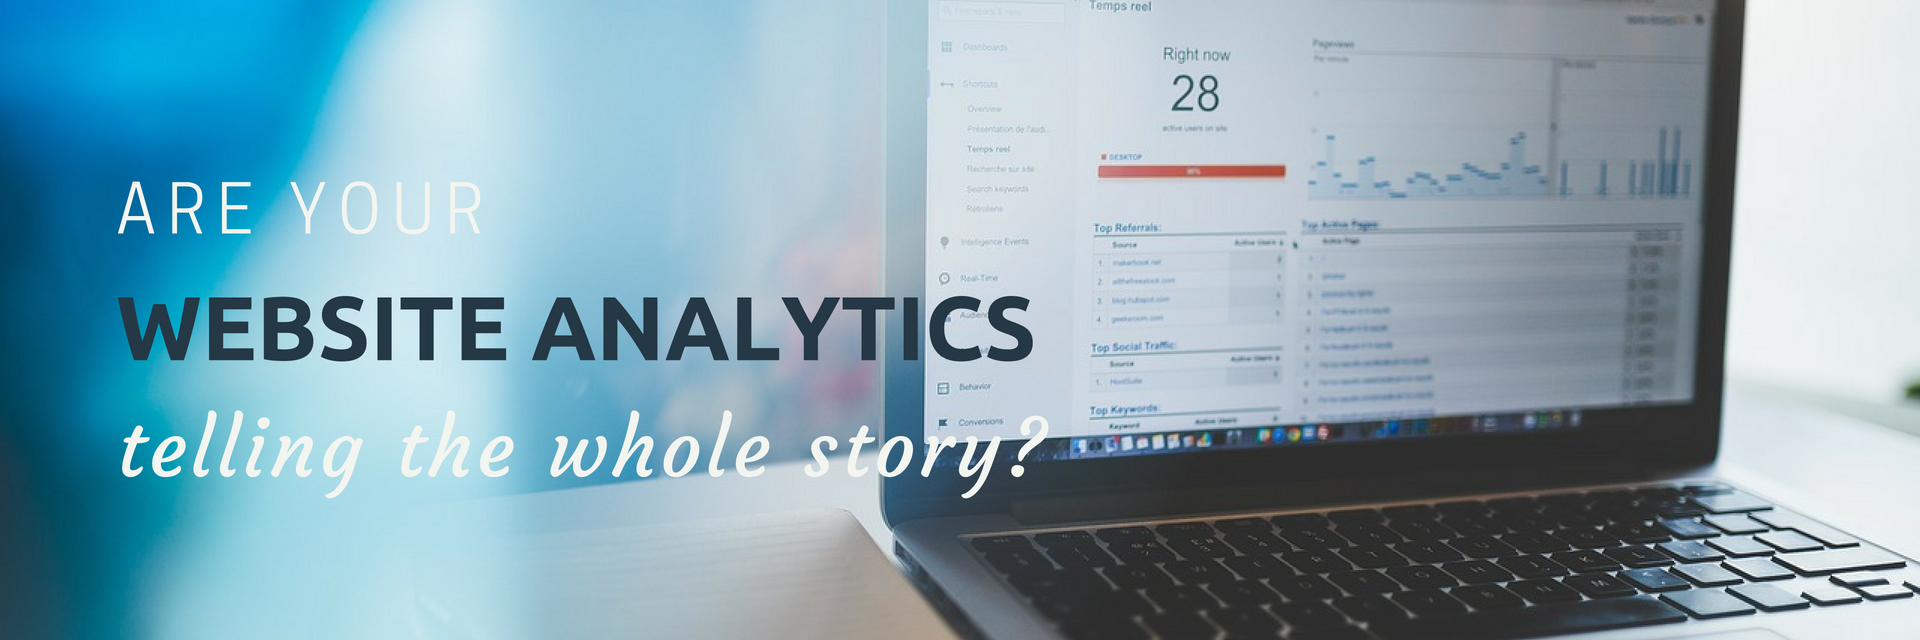 website analytics tell whole story